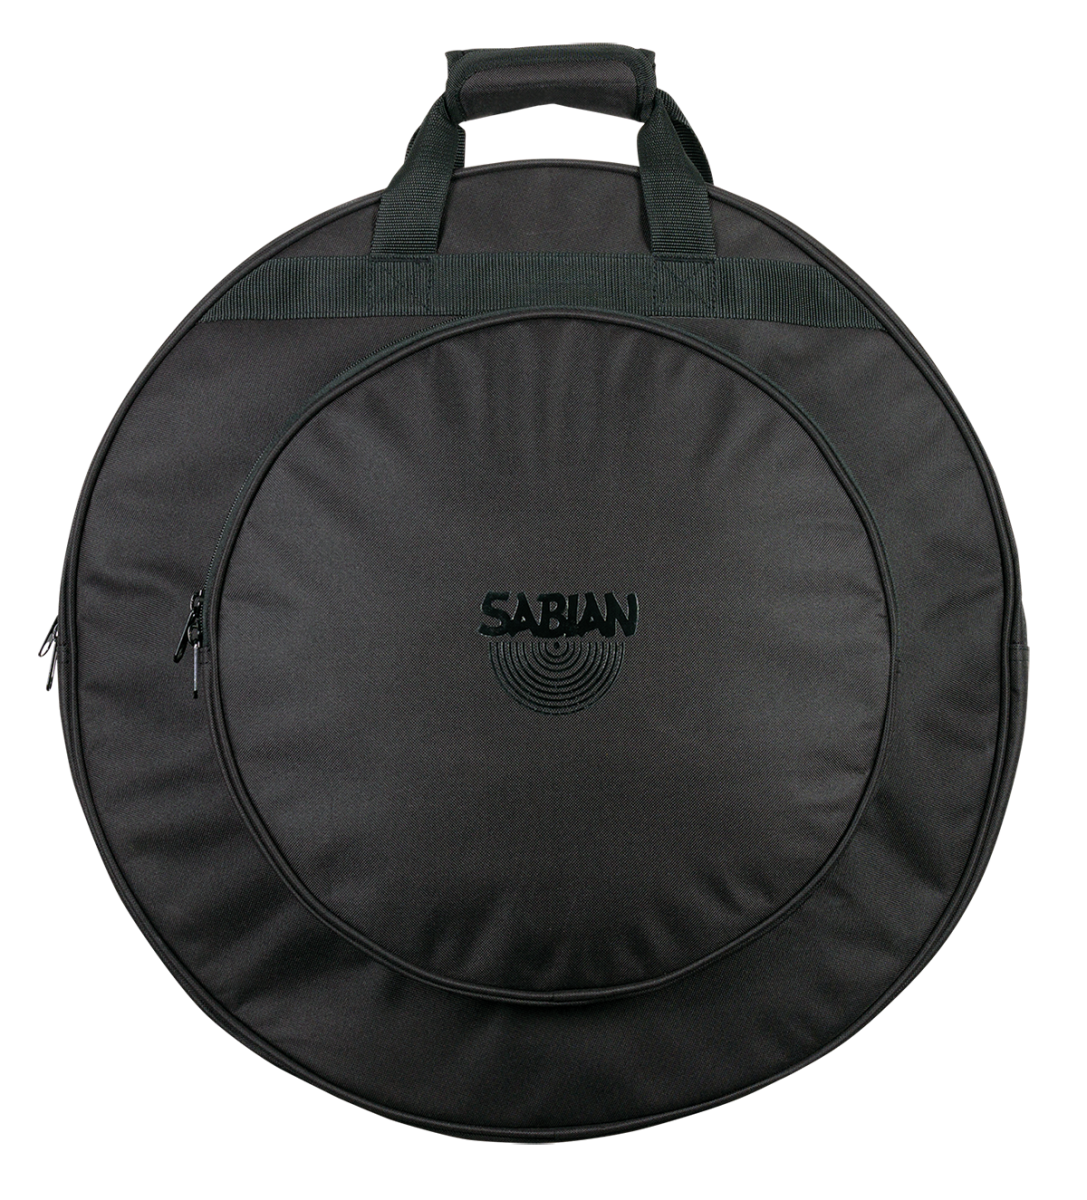 Quick 22 Black Out Cymbal Bag